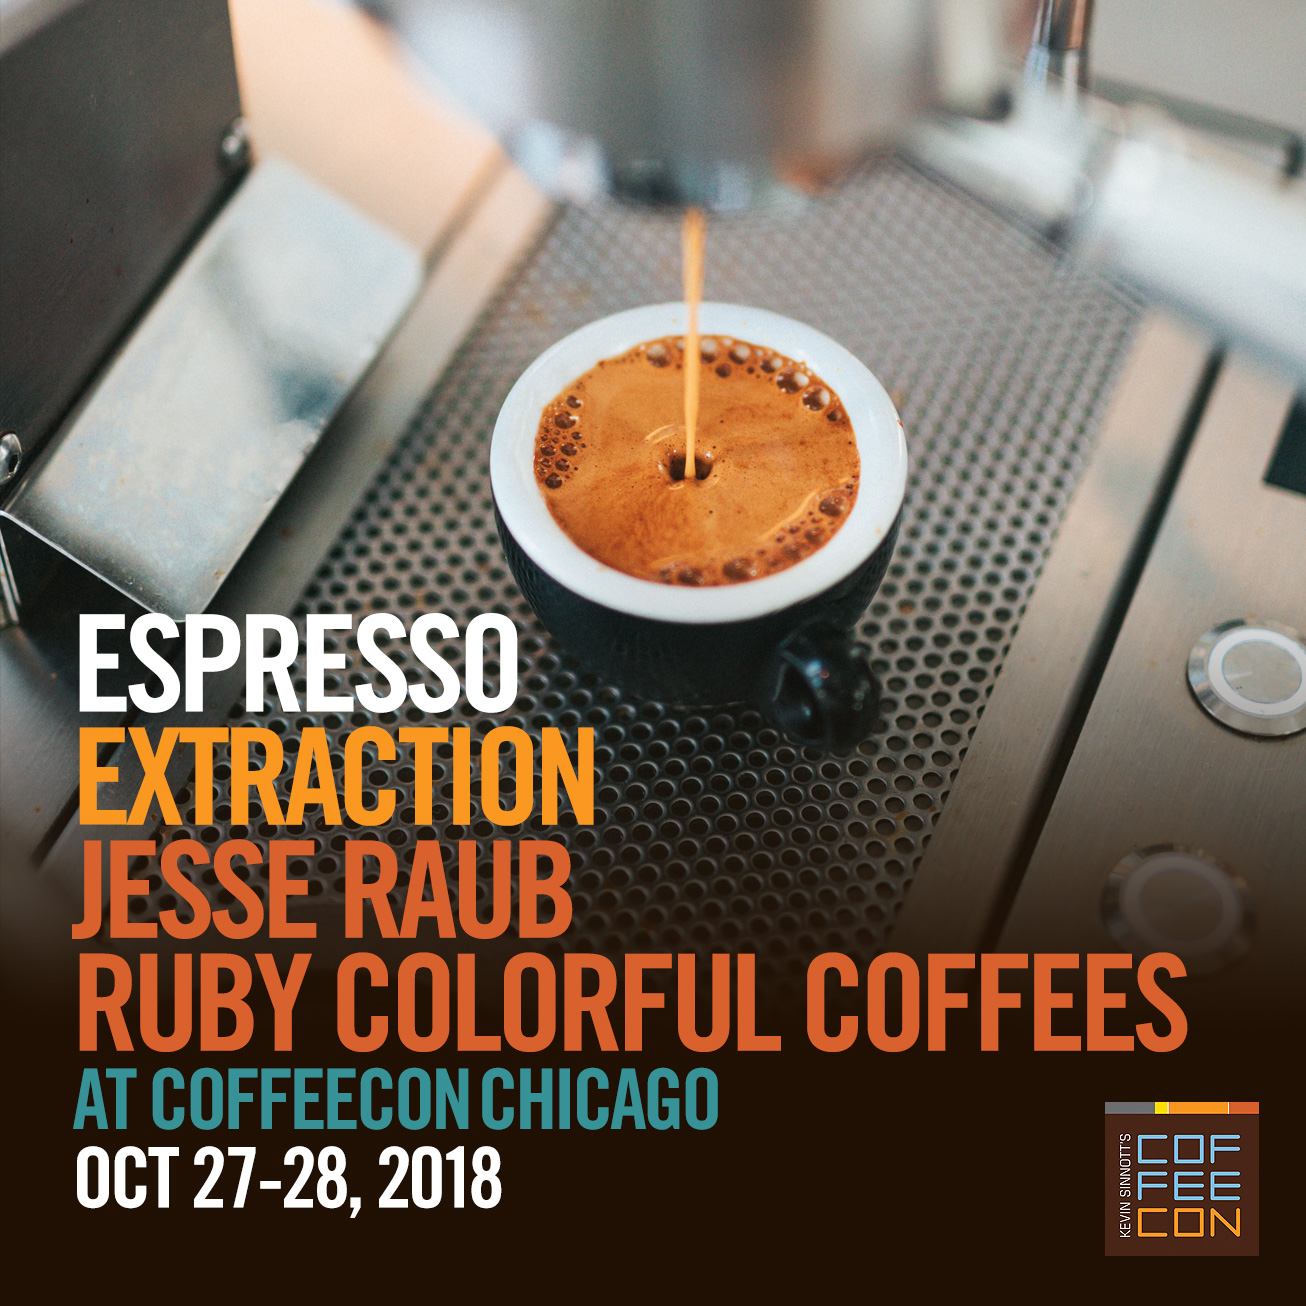 Espresso Extraction with Ruby Colorful Coffees at CoffeeConChi 2018